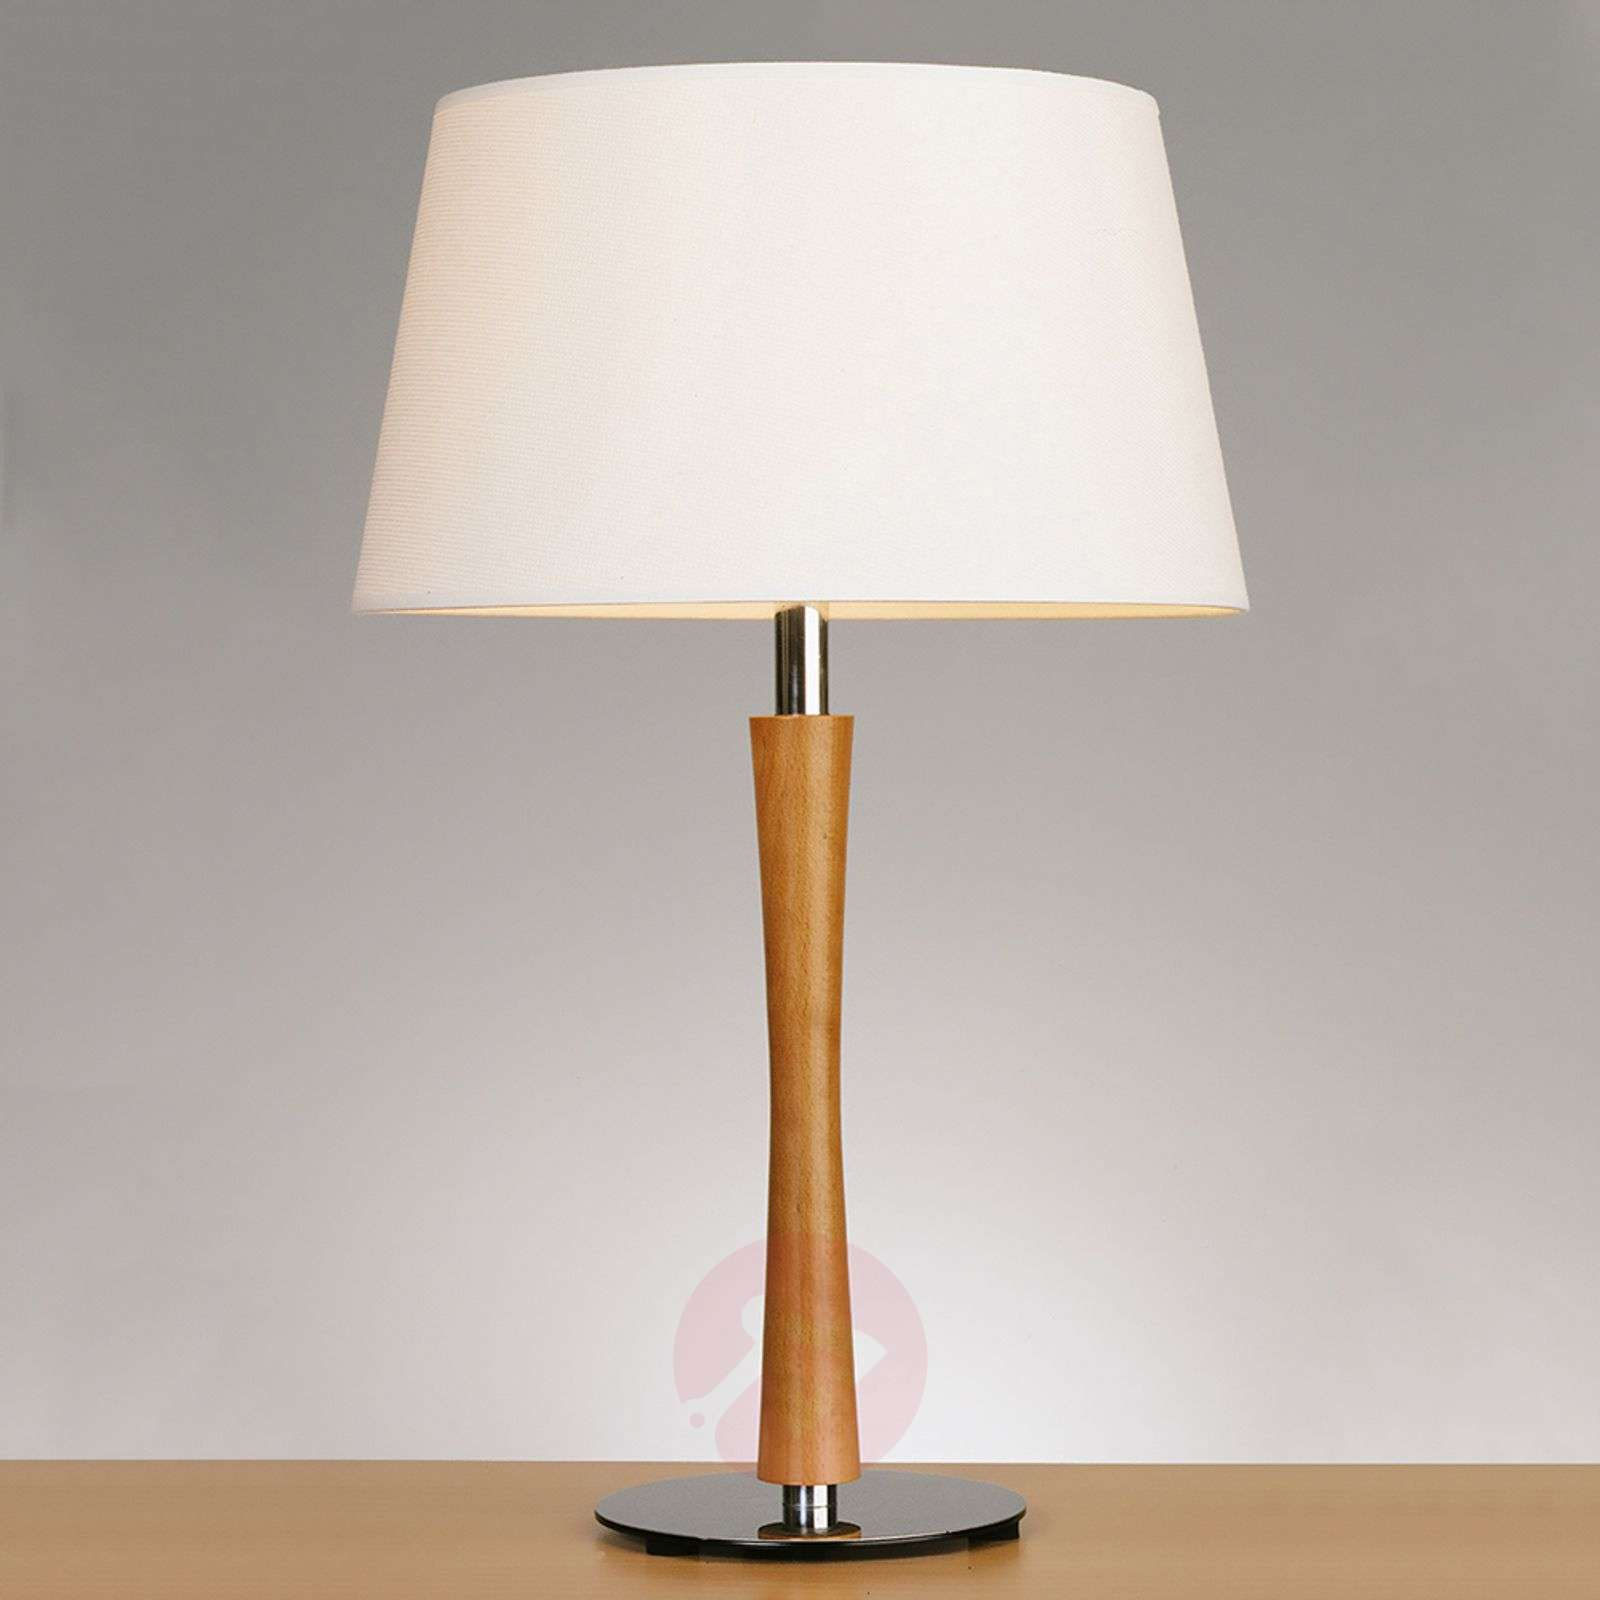 Beverly It table lamp, chrome-1065021-01